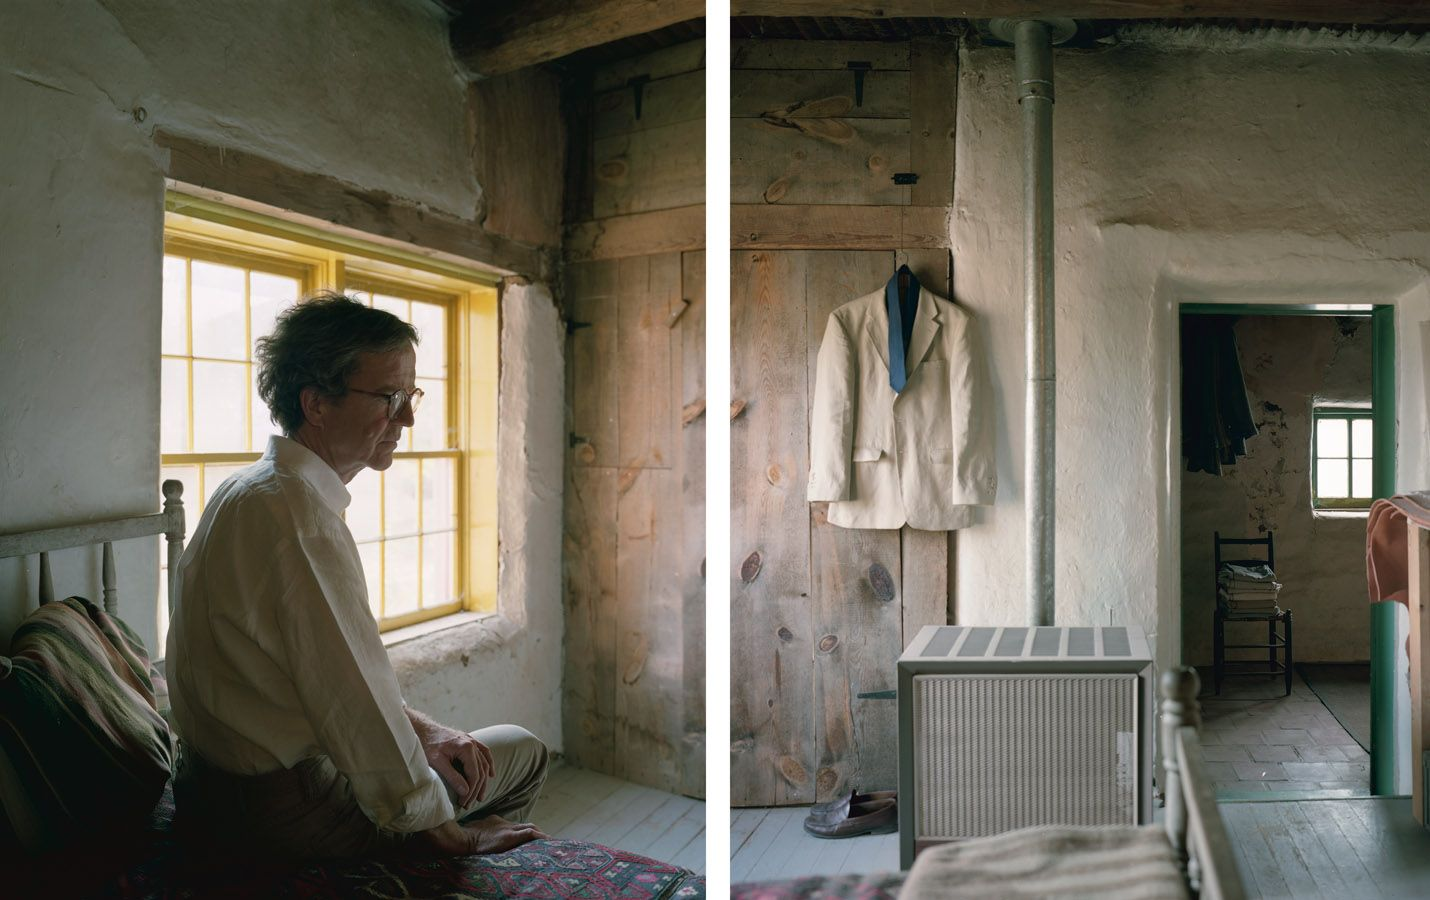 Kevin, 2012. Two-panel archival pigment print, available as 24 x 40 or 40 x 60 inches.